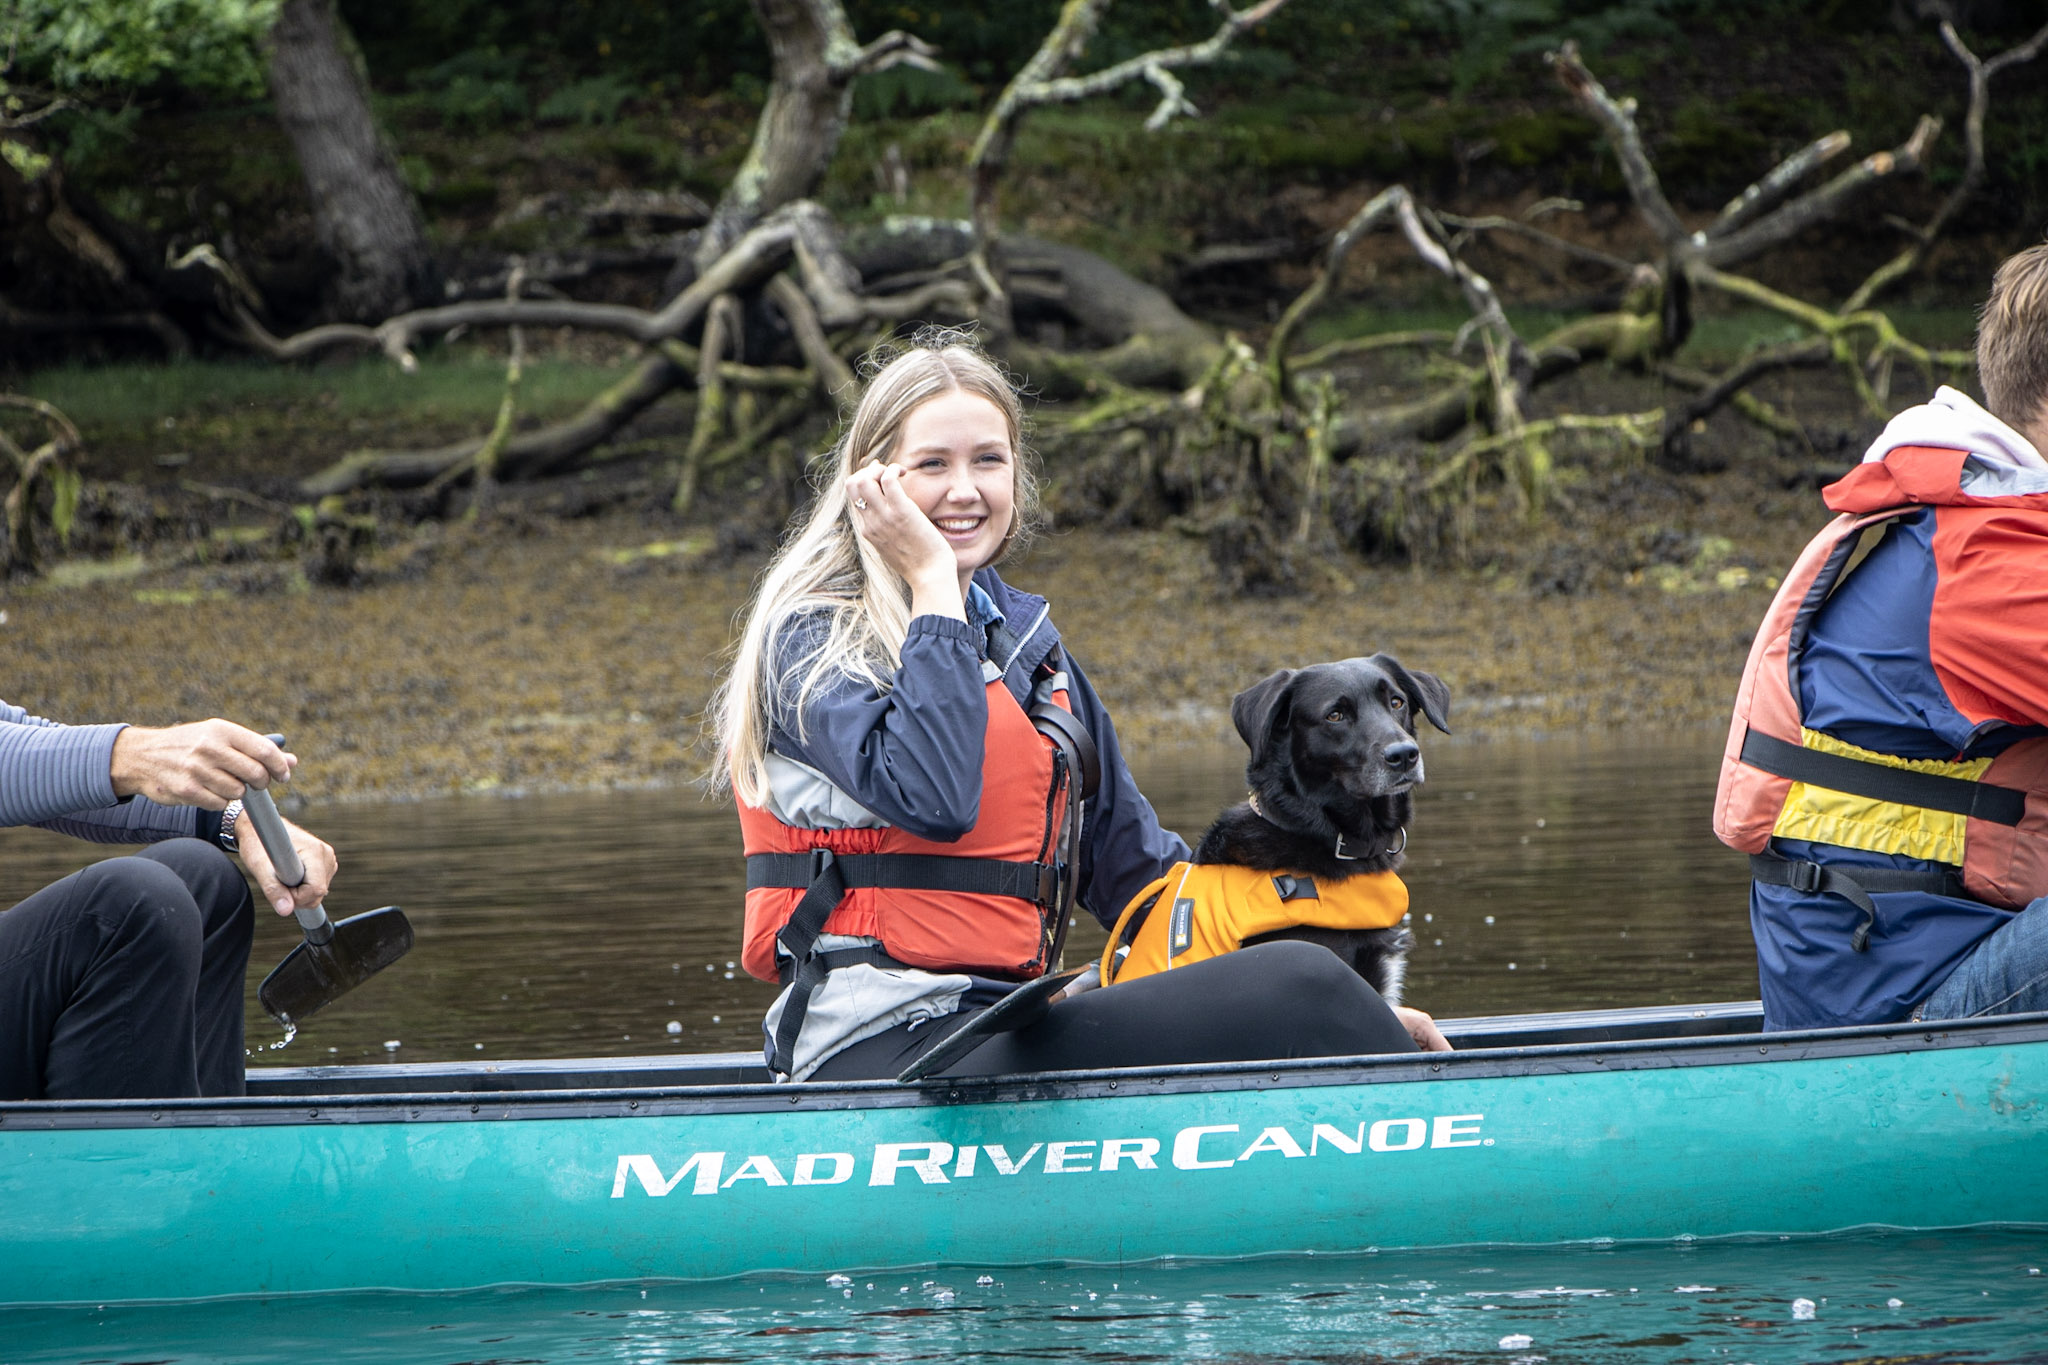 Lady with dog in a canadian-style canoe.